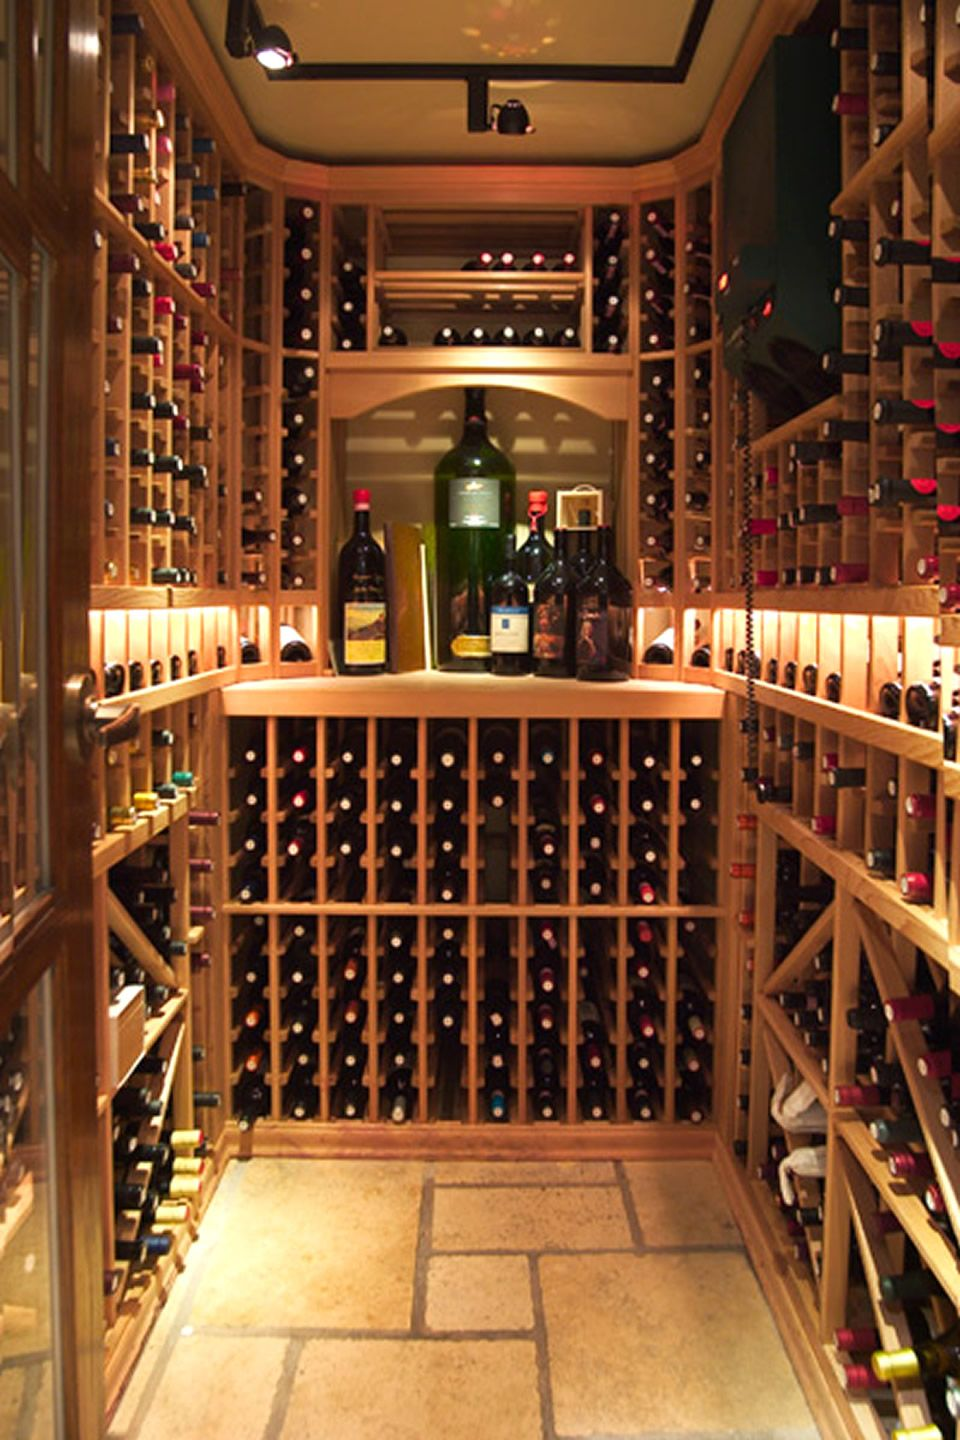 Restaurant Wine Room Storagr Interior Design of Cesca Enoteca and  Trattoria, Upper West Side NYC